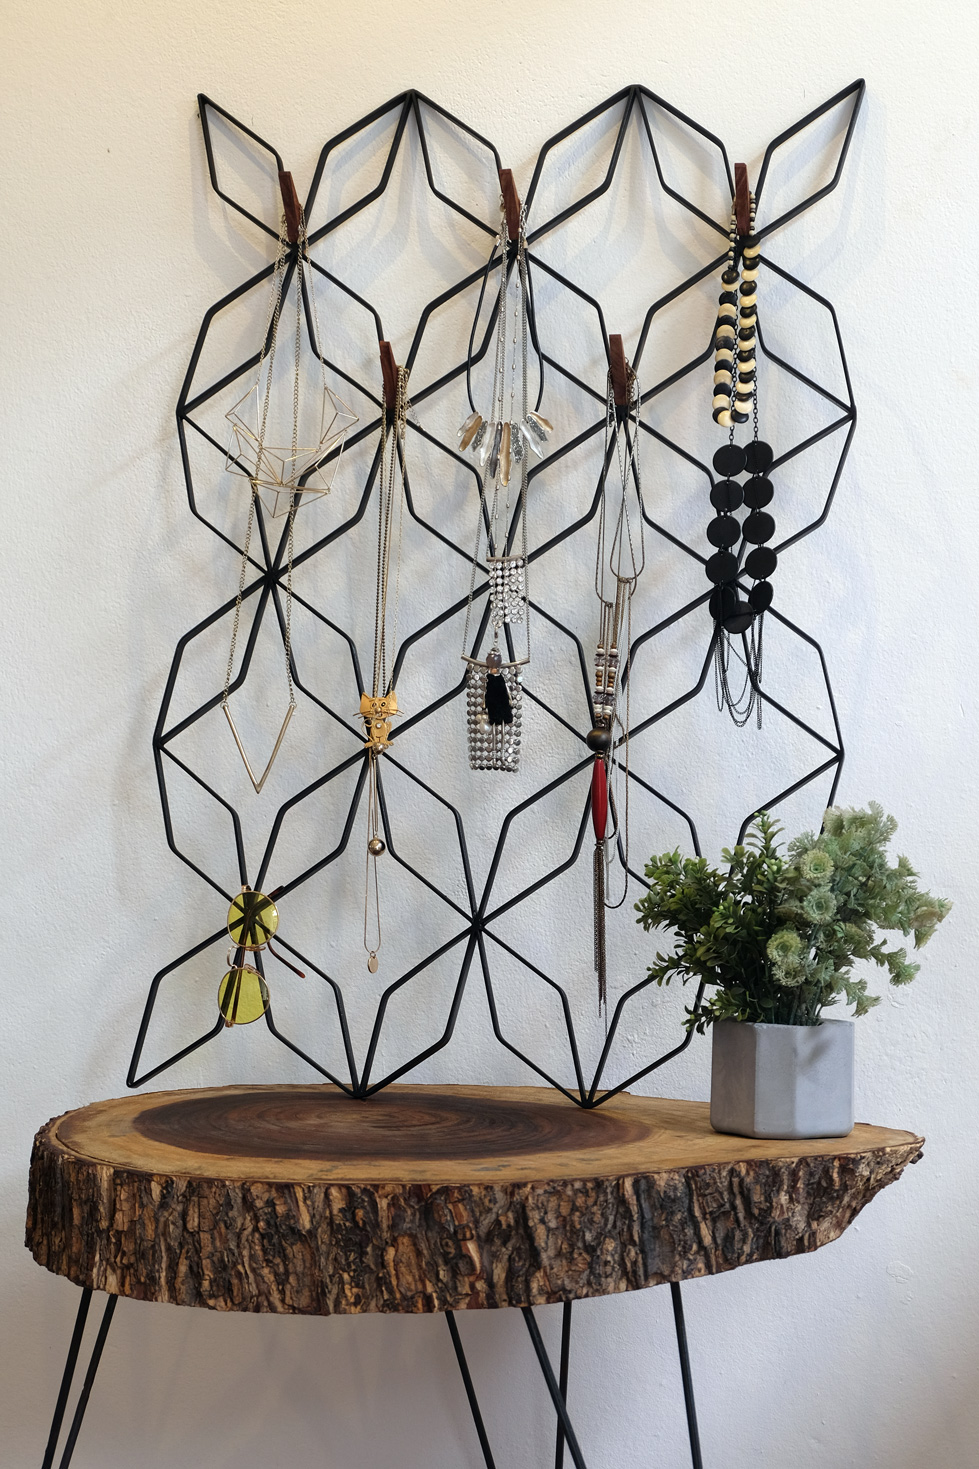 Handmade wall organizer grilles Butterfly